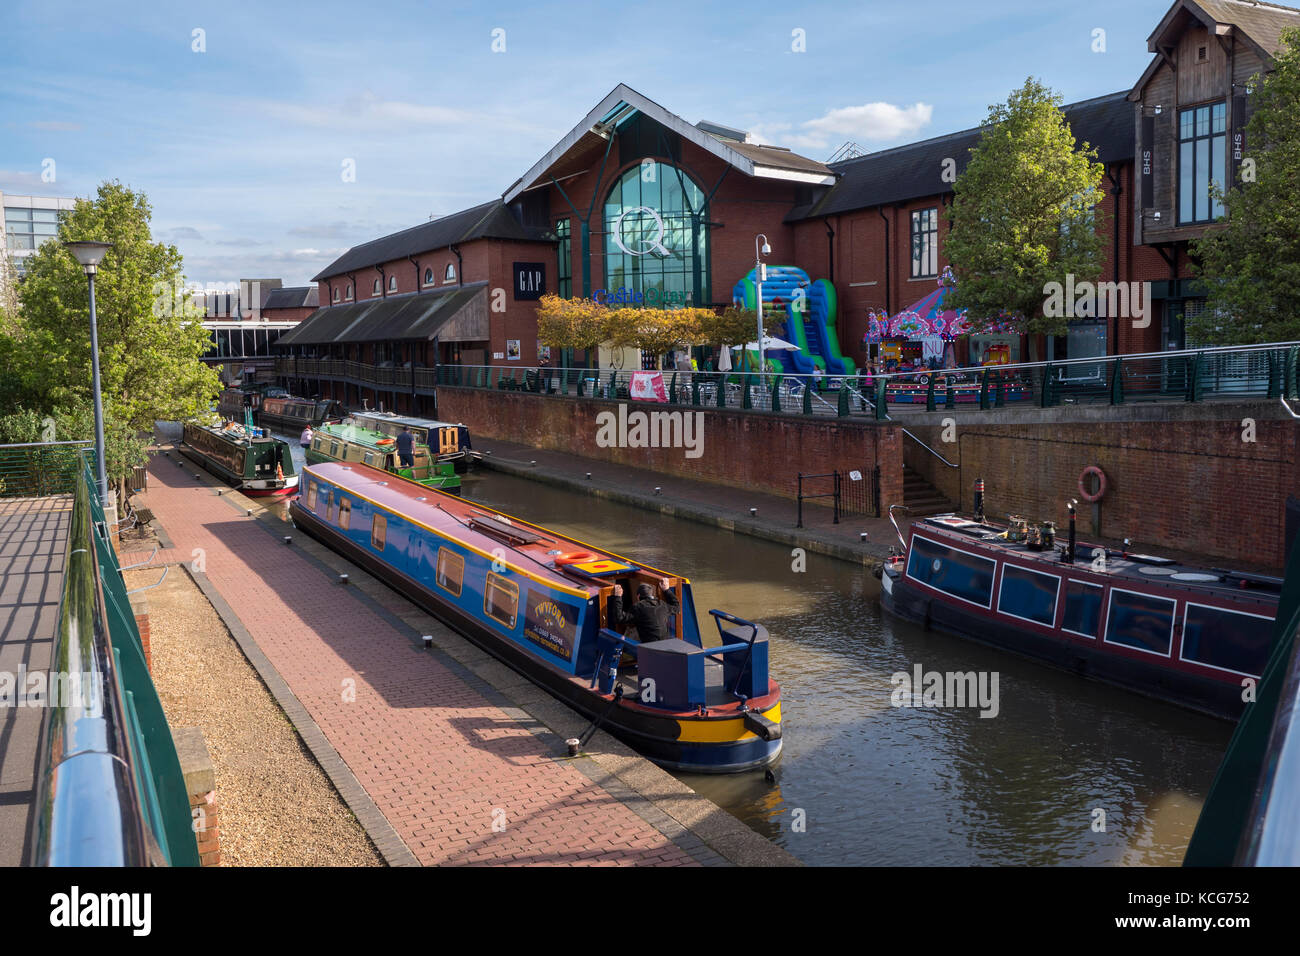 Canal boats moored on the Oxford Canal at Castle Quay Shopping Centre Banbury Oxfordshire England - Stock Image